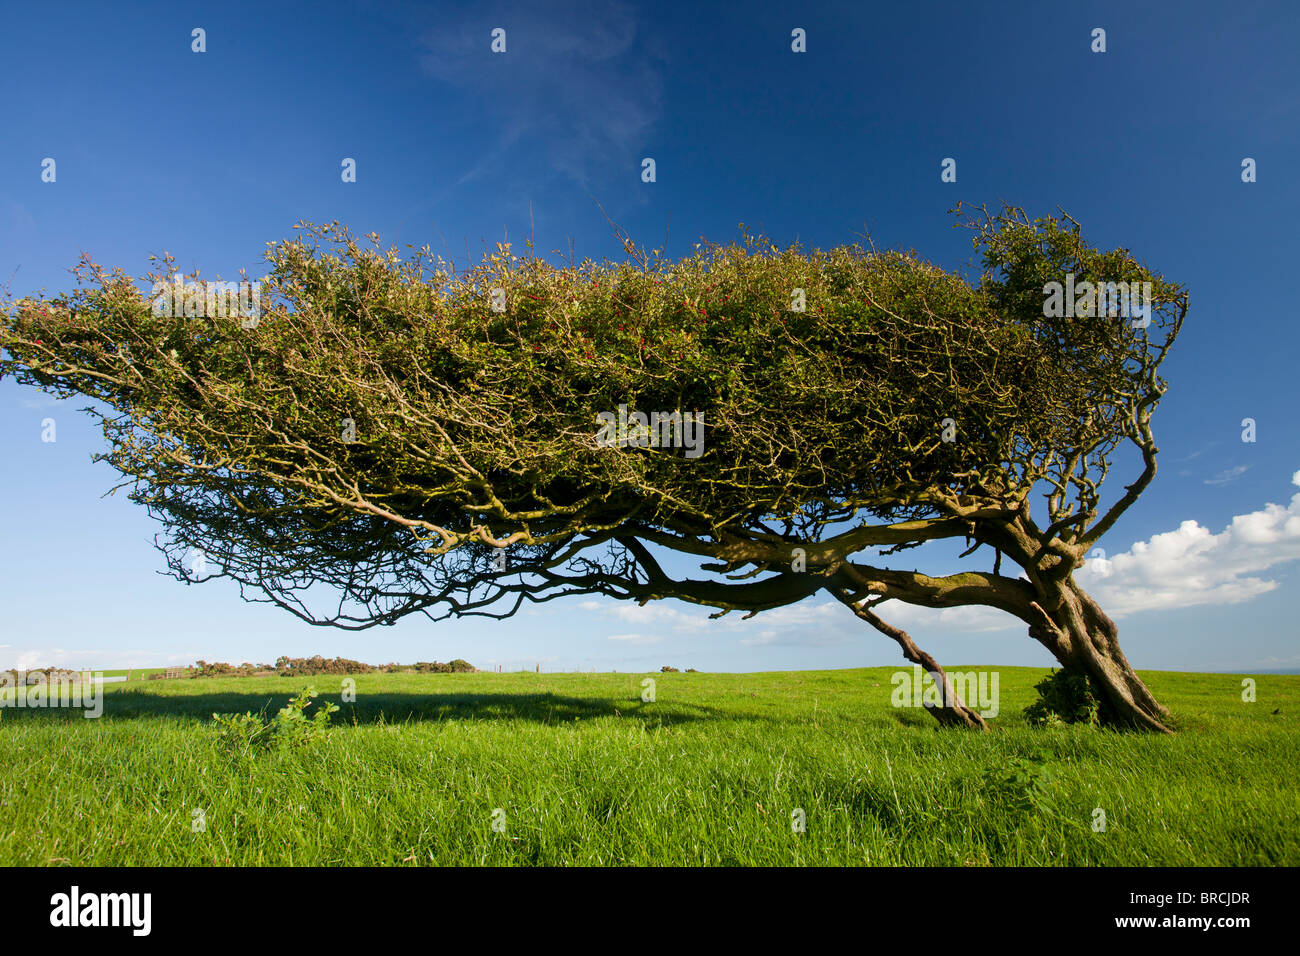 Heavily wind-pruned old Hawthorn tree, Crataegus monogyna, on the Purbeck hills, Dorset. - Stock Image